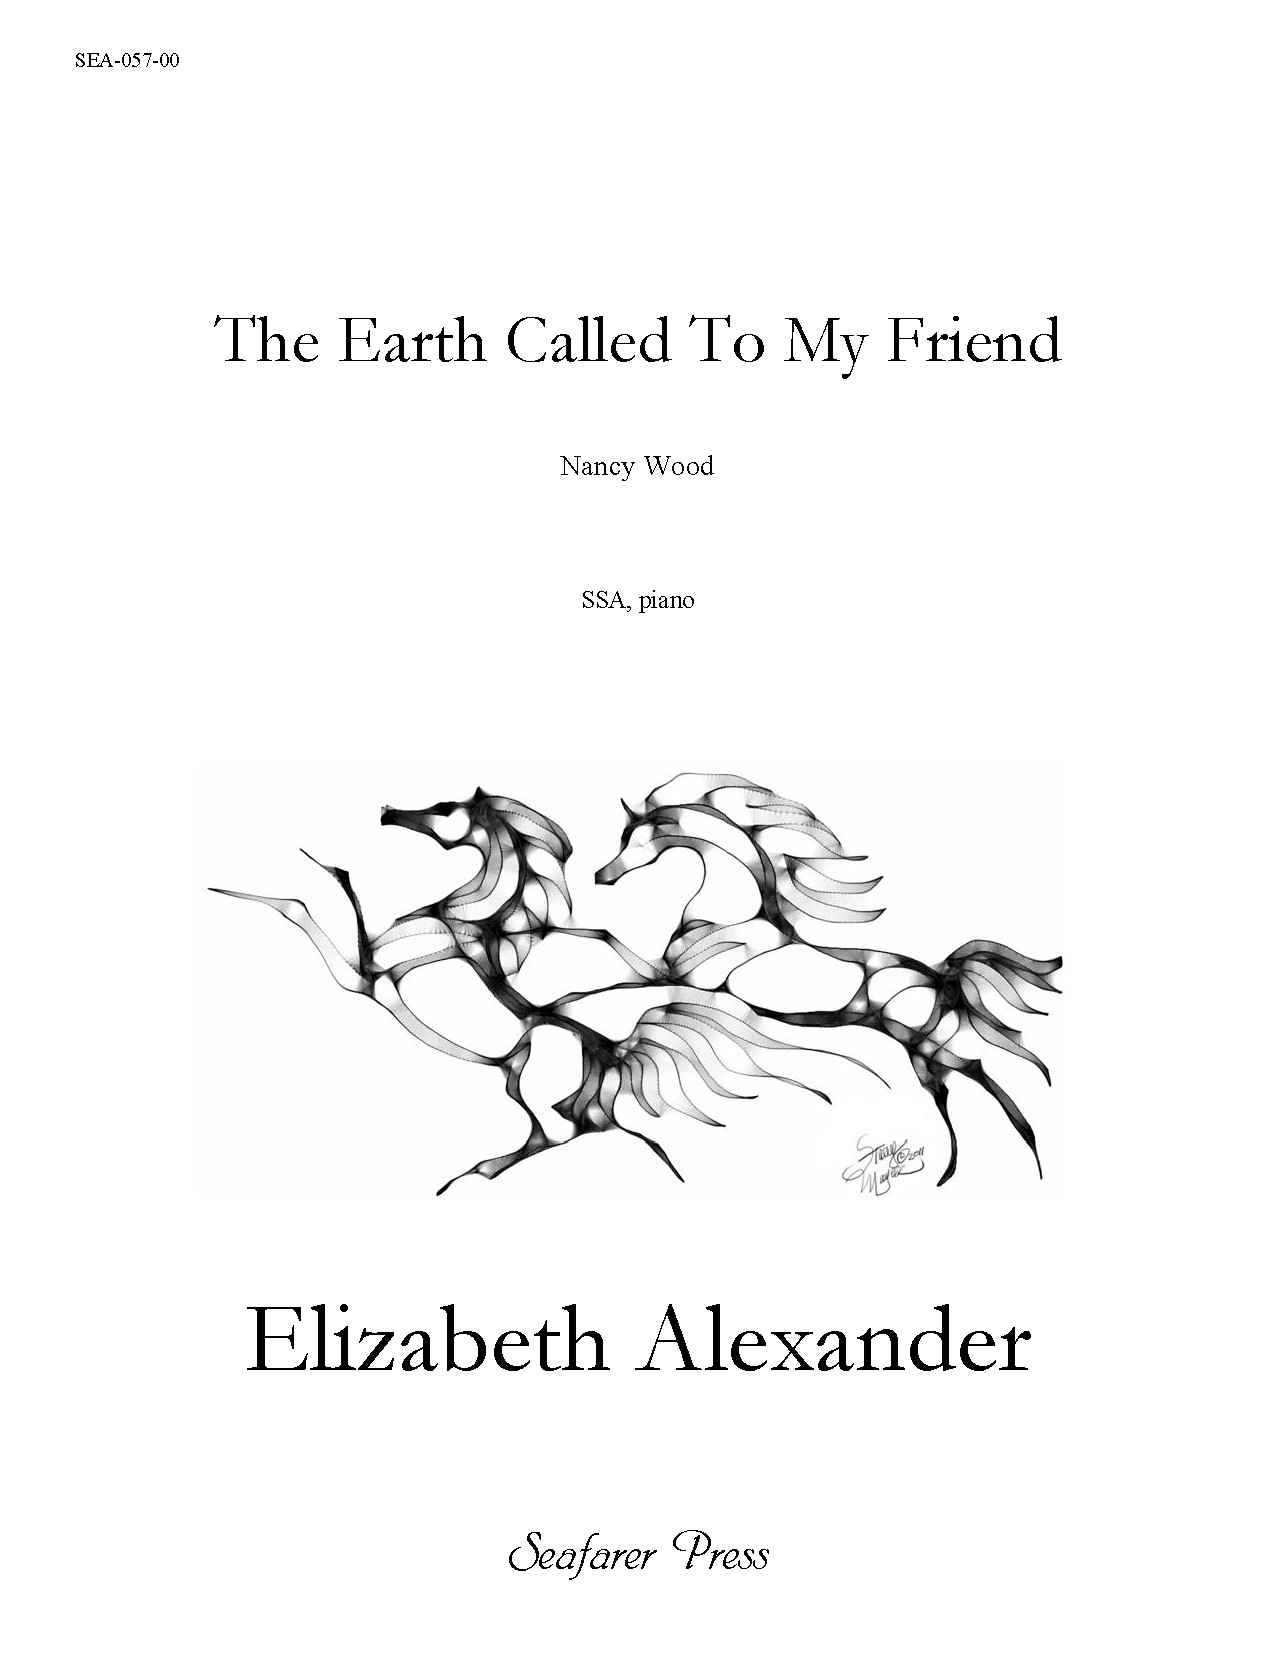 SEA-057-00 - The Earth Called To My Friend